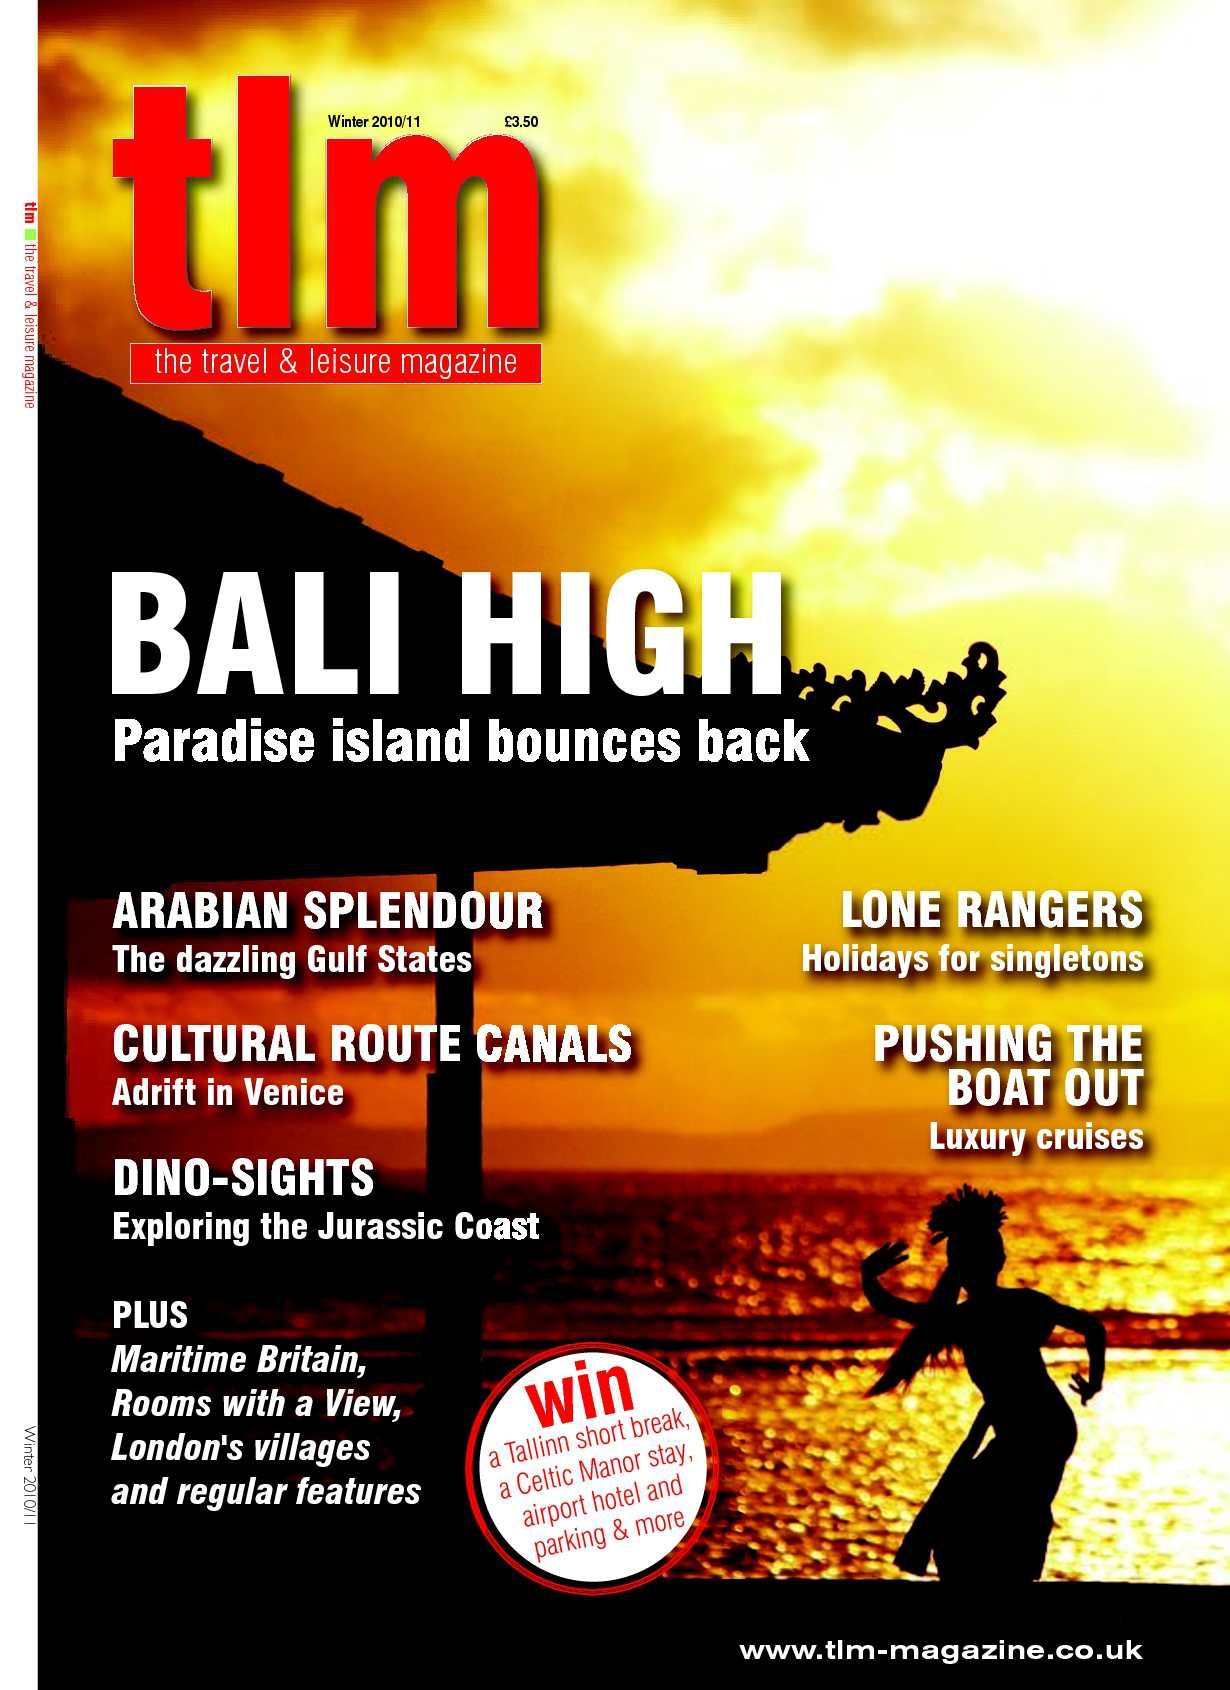 Calamo Tlm The Travel Leisure Magazine Winter 2010 Tenacious Adults Youth Berths International Tall Ships Race Leg